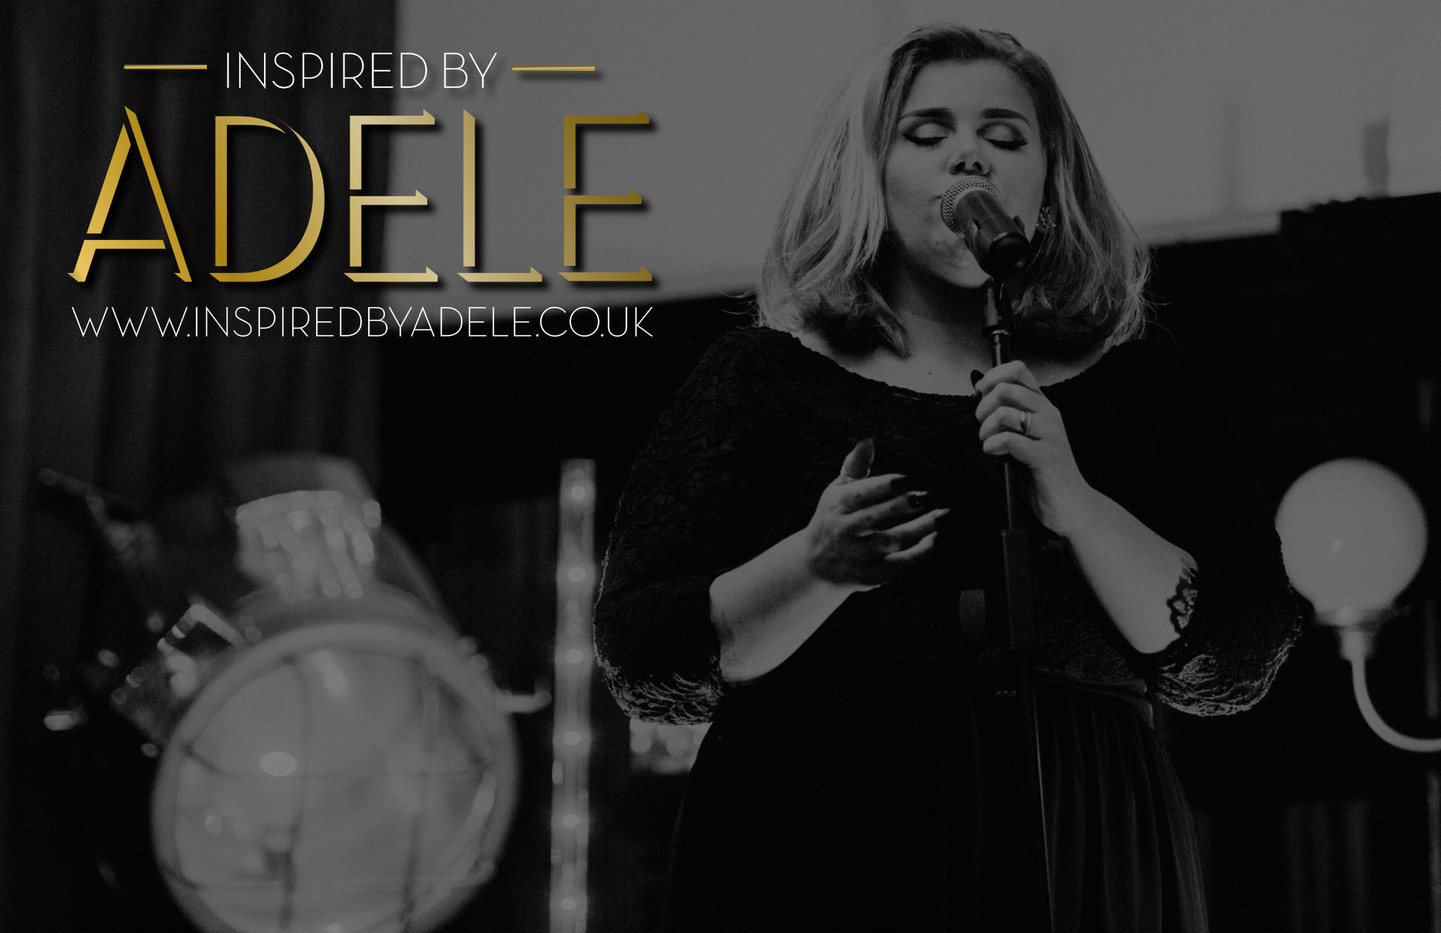 Adele poster tribute look a like